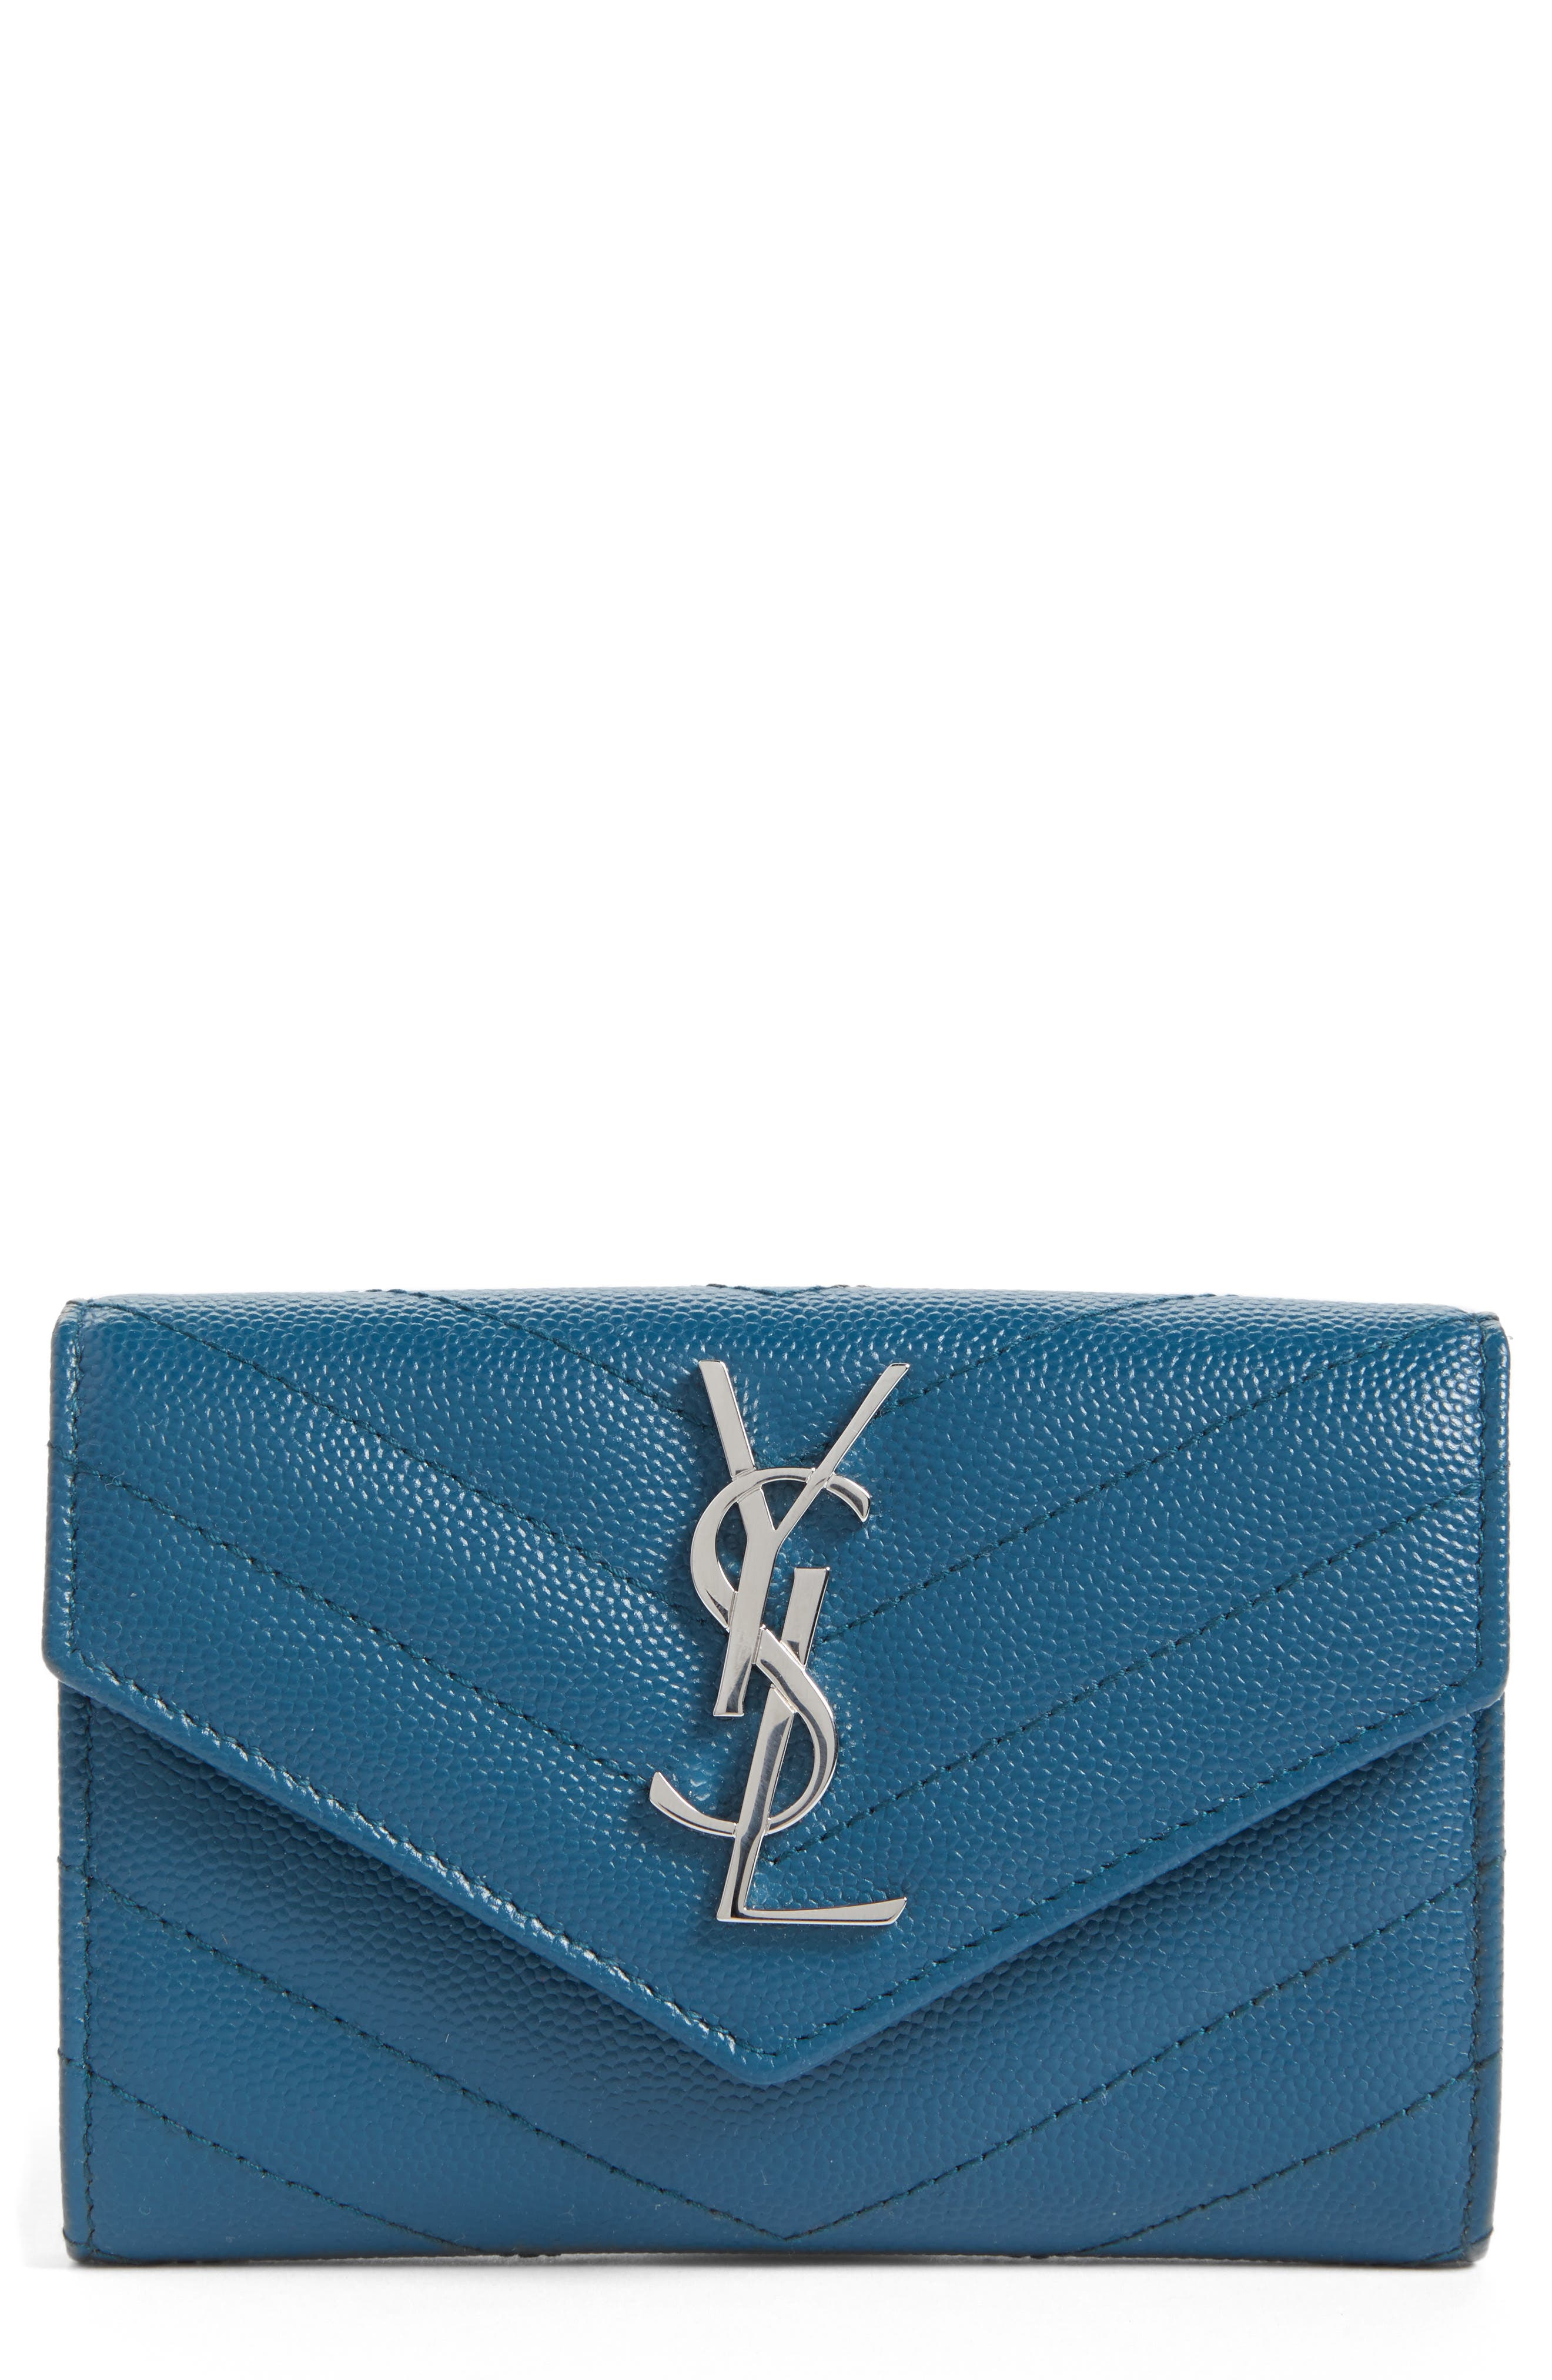 'Small Monogram' Leather French Wallet,                             Main thumbnail 2, color,